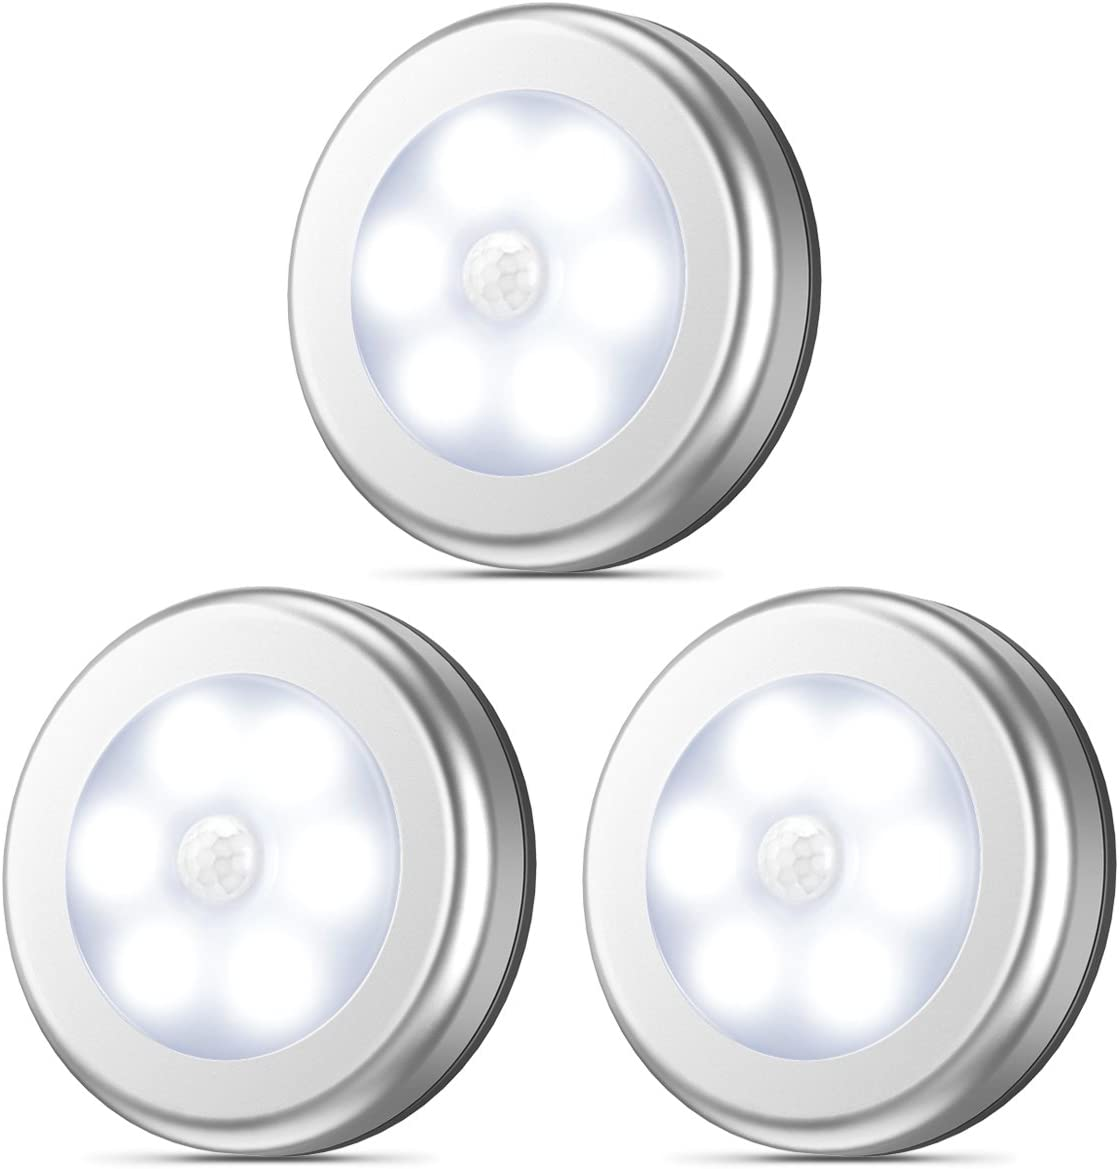 AMIR Motion Sensor Light, Stick-Anywhere Cordless Battery-Powered LED Night Light, Closet Lights Stair Lights, Tap Lights, Safe Lights for Hallway, Bathroom, Bedroom, Kitchen White – Pack of 3